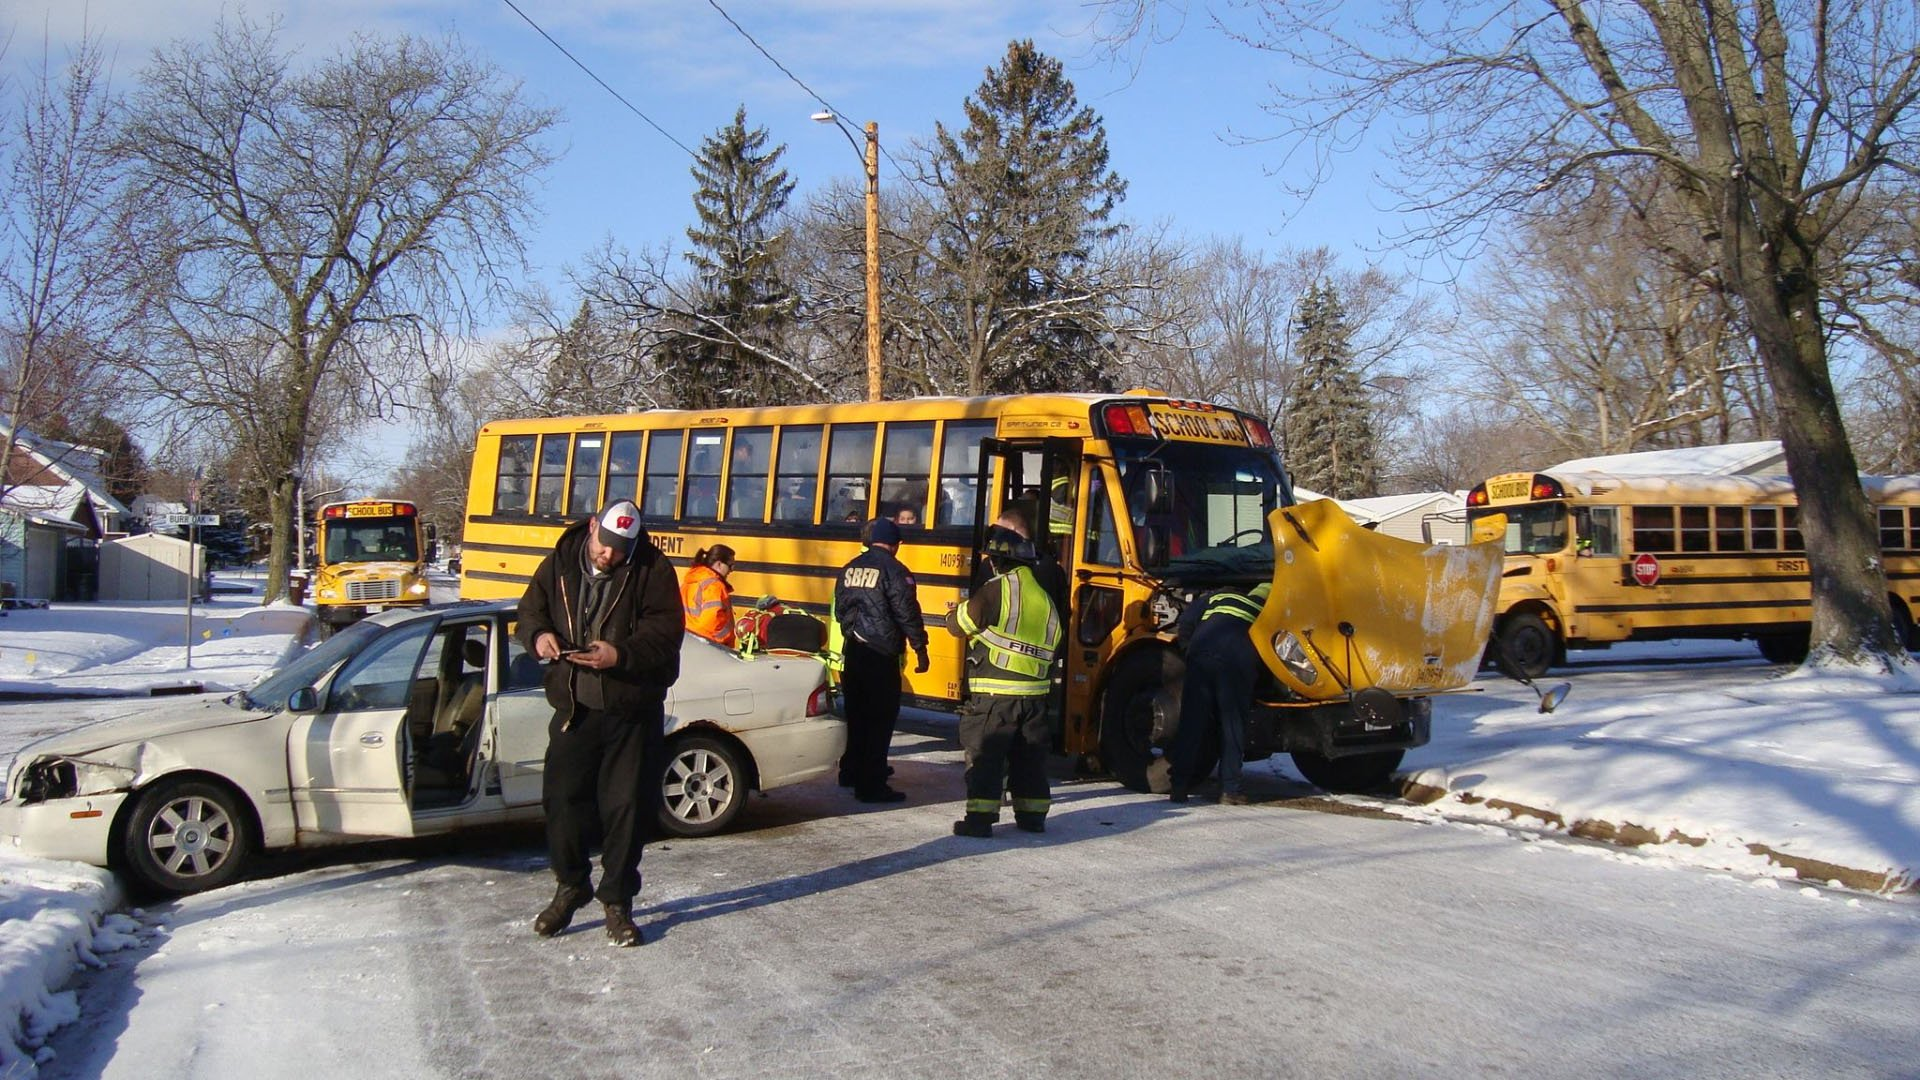 Authorities: At least 7 hurt in Iowa school bus crash